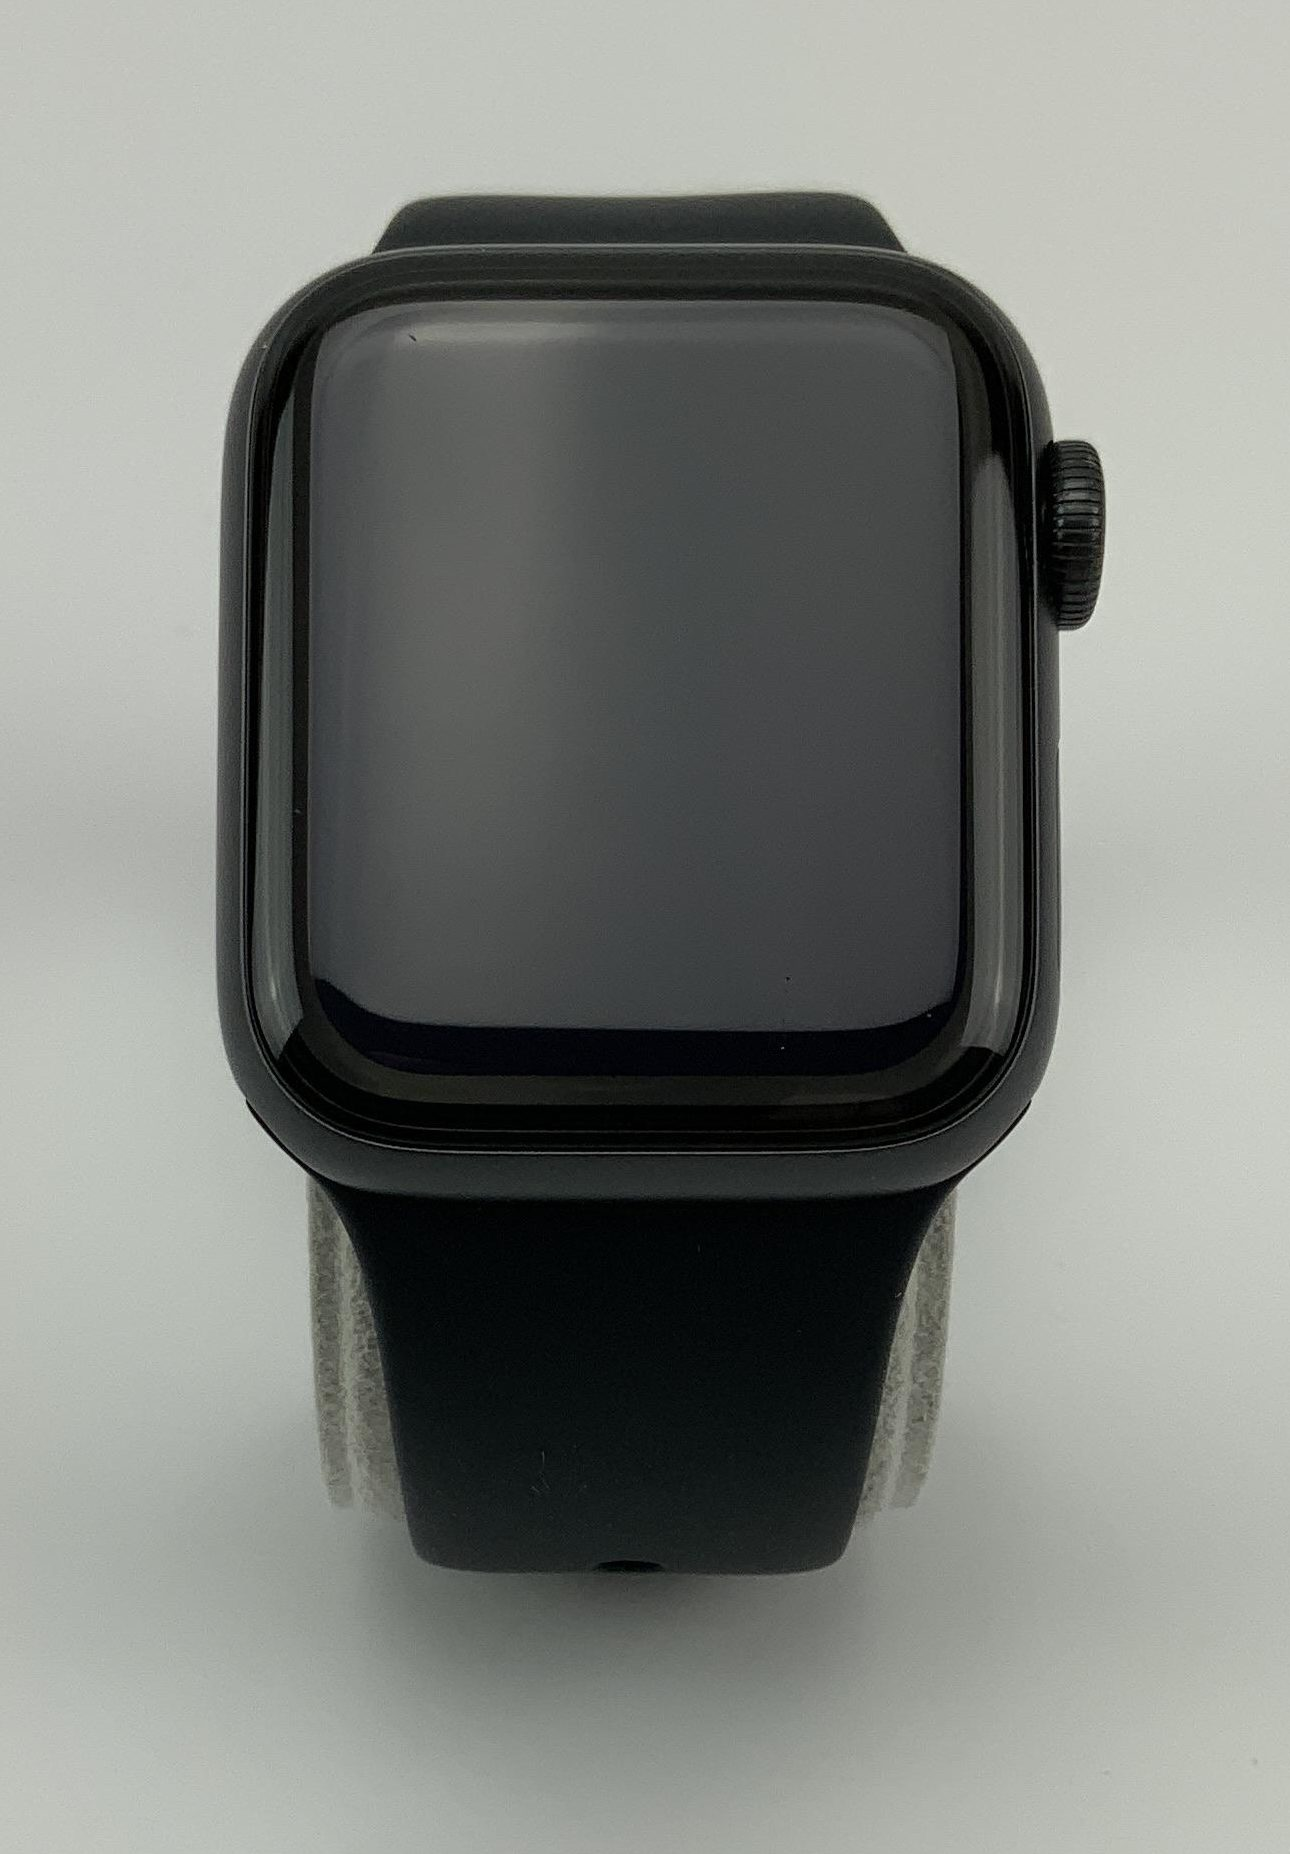 Watch Series 6 Aluminum Cellular (40mm), Space Gray, Afbeelding 1